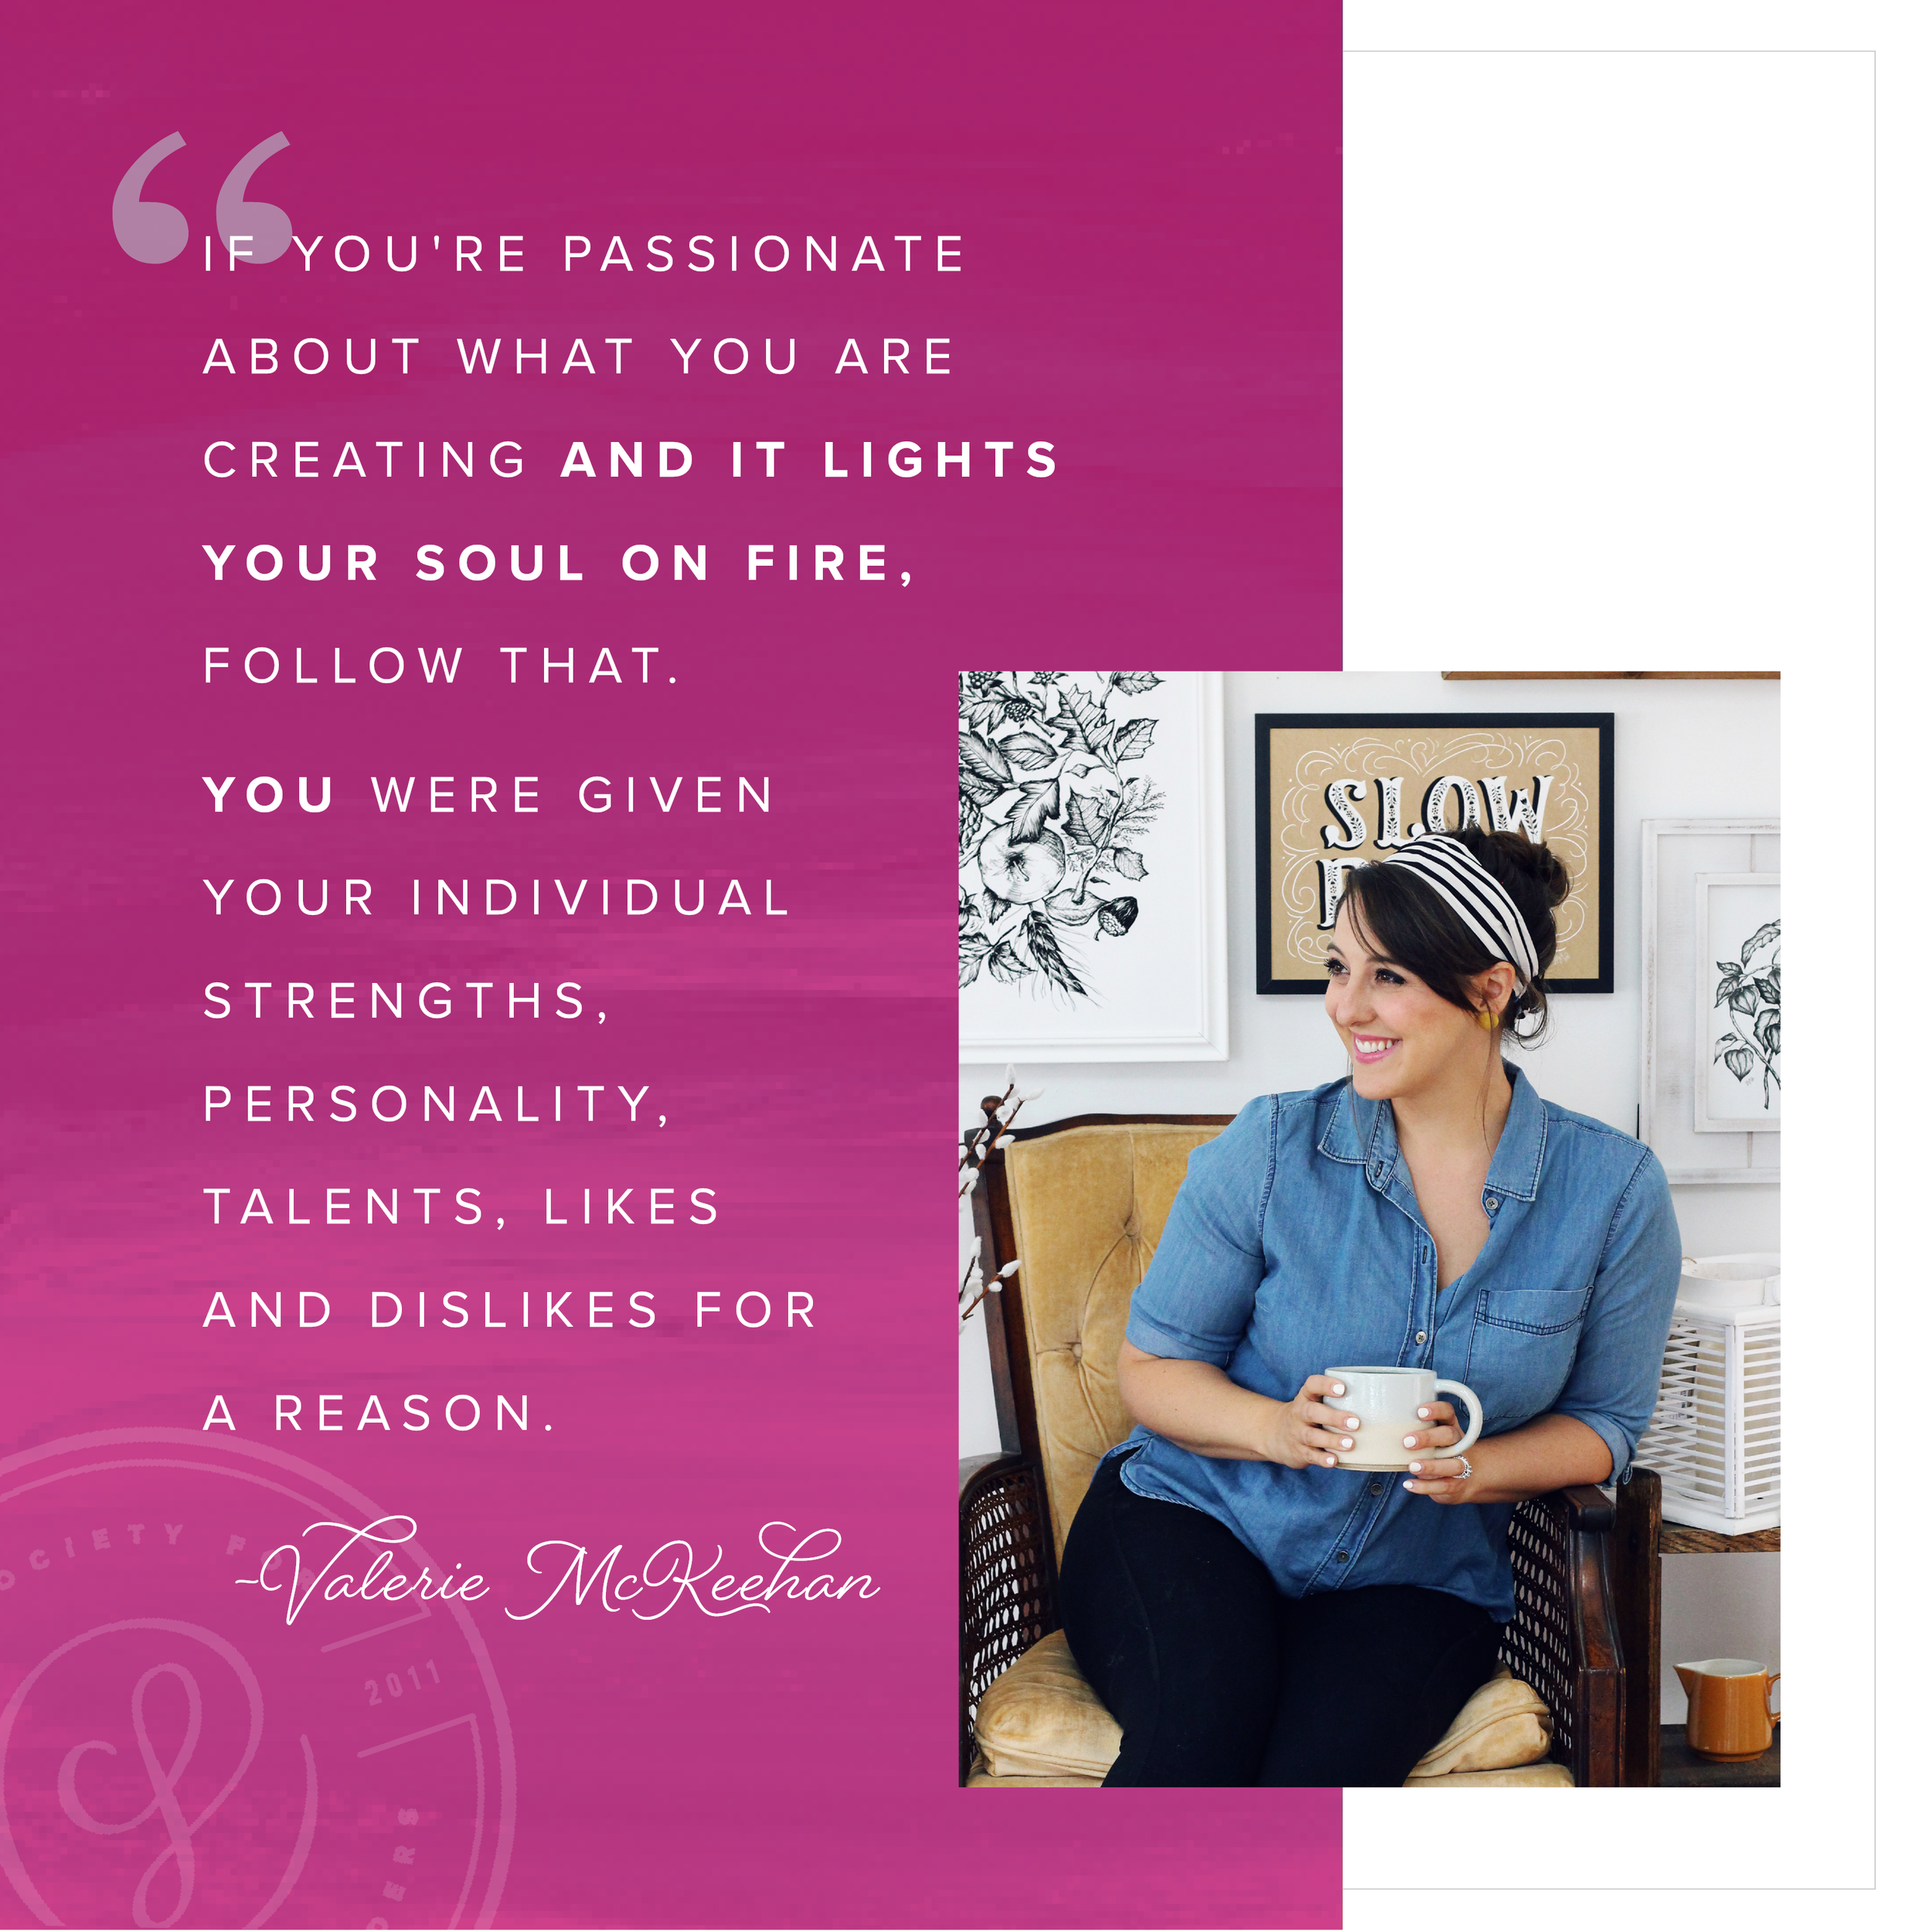 Starting a Creative Business - Tips with Valerie McKeehan of Lily & Val